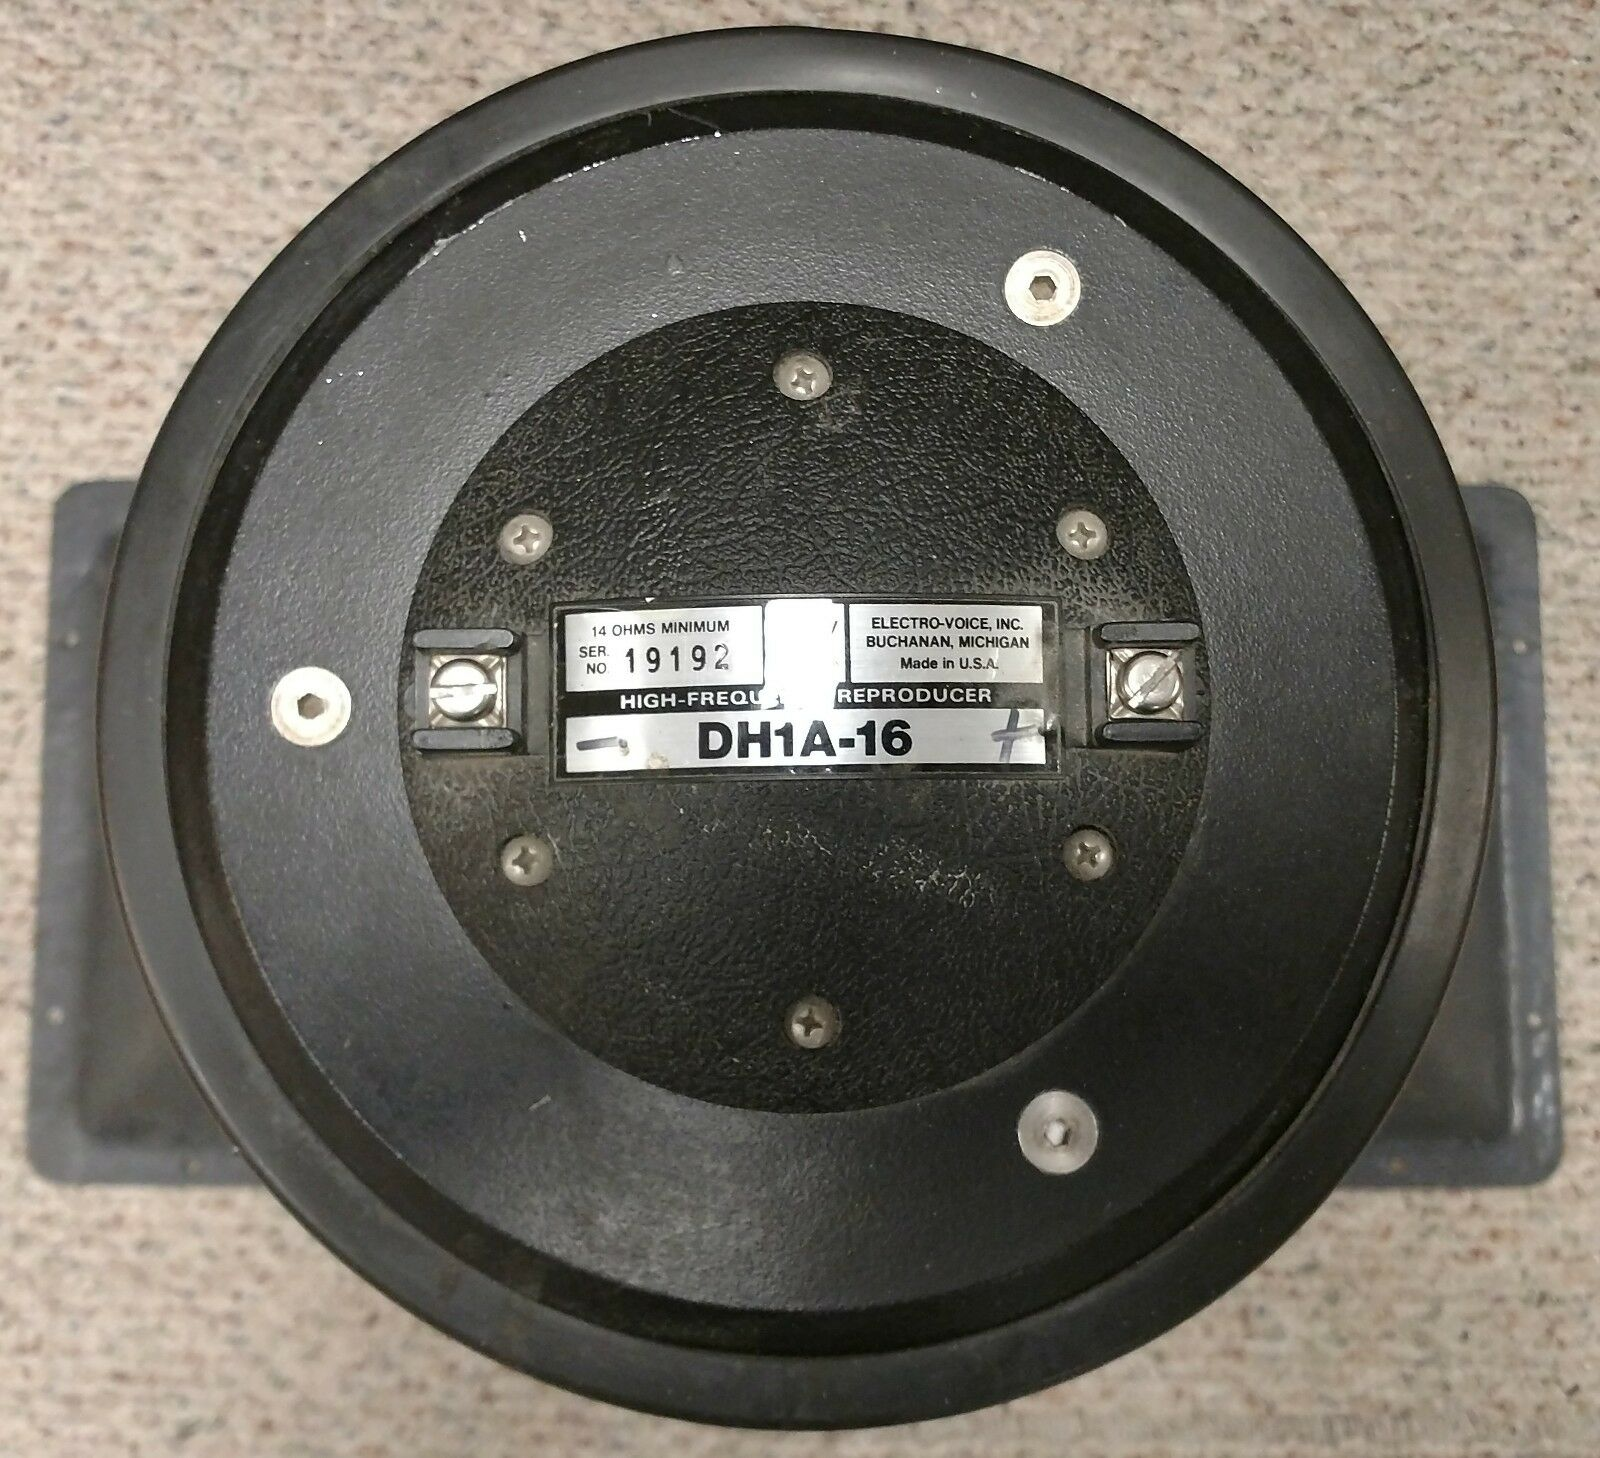 STADIUM SOUND ELECTROVOICE DH1A - 16 HIGH FREQUENCY REPRODUCER HORN LOUDSPEAKER